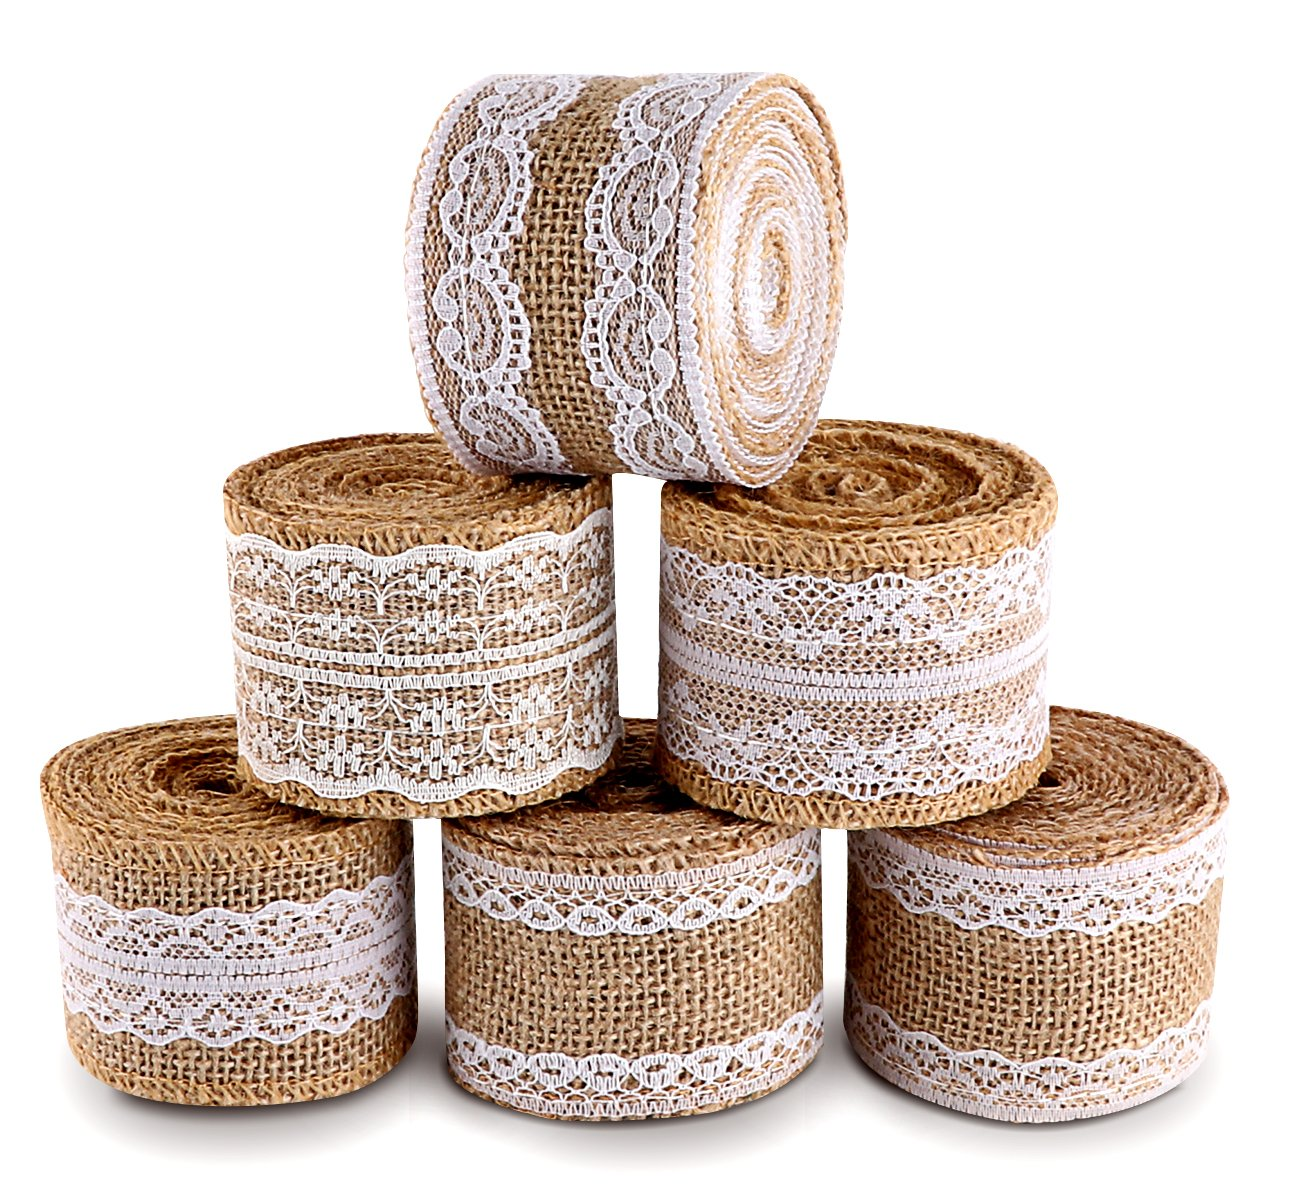 ilauke 20 Yards Natural Burlap Ribbon Roll with White Lace Trims Tape 6 Rolls for Rustic Wedding Favor Decorations 4336858123